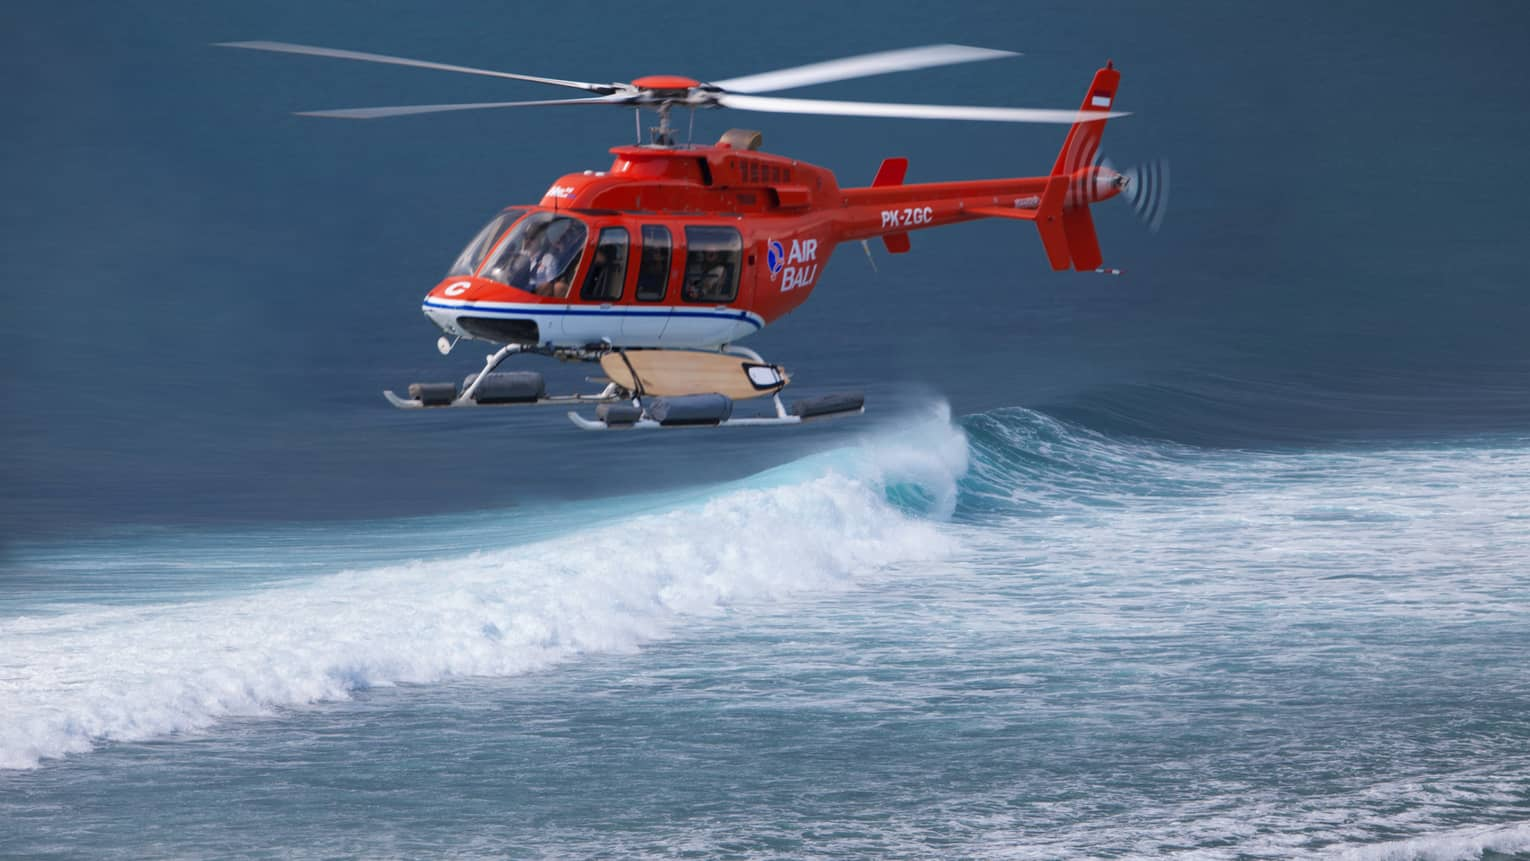 A helicopter hovers over the water for a guest to go helisurfing